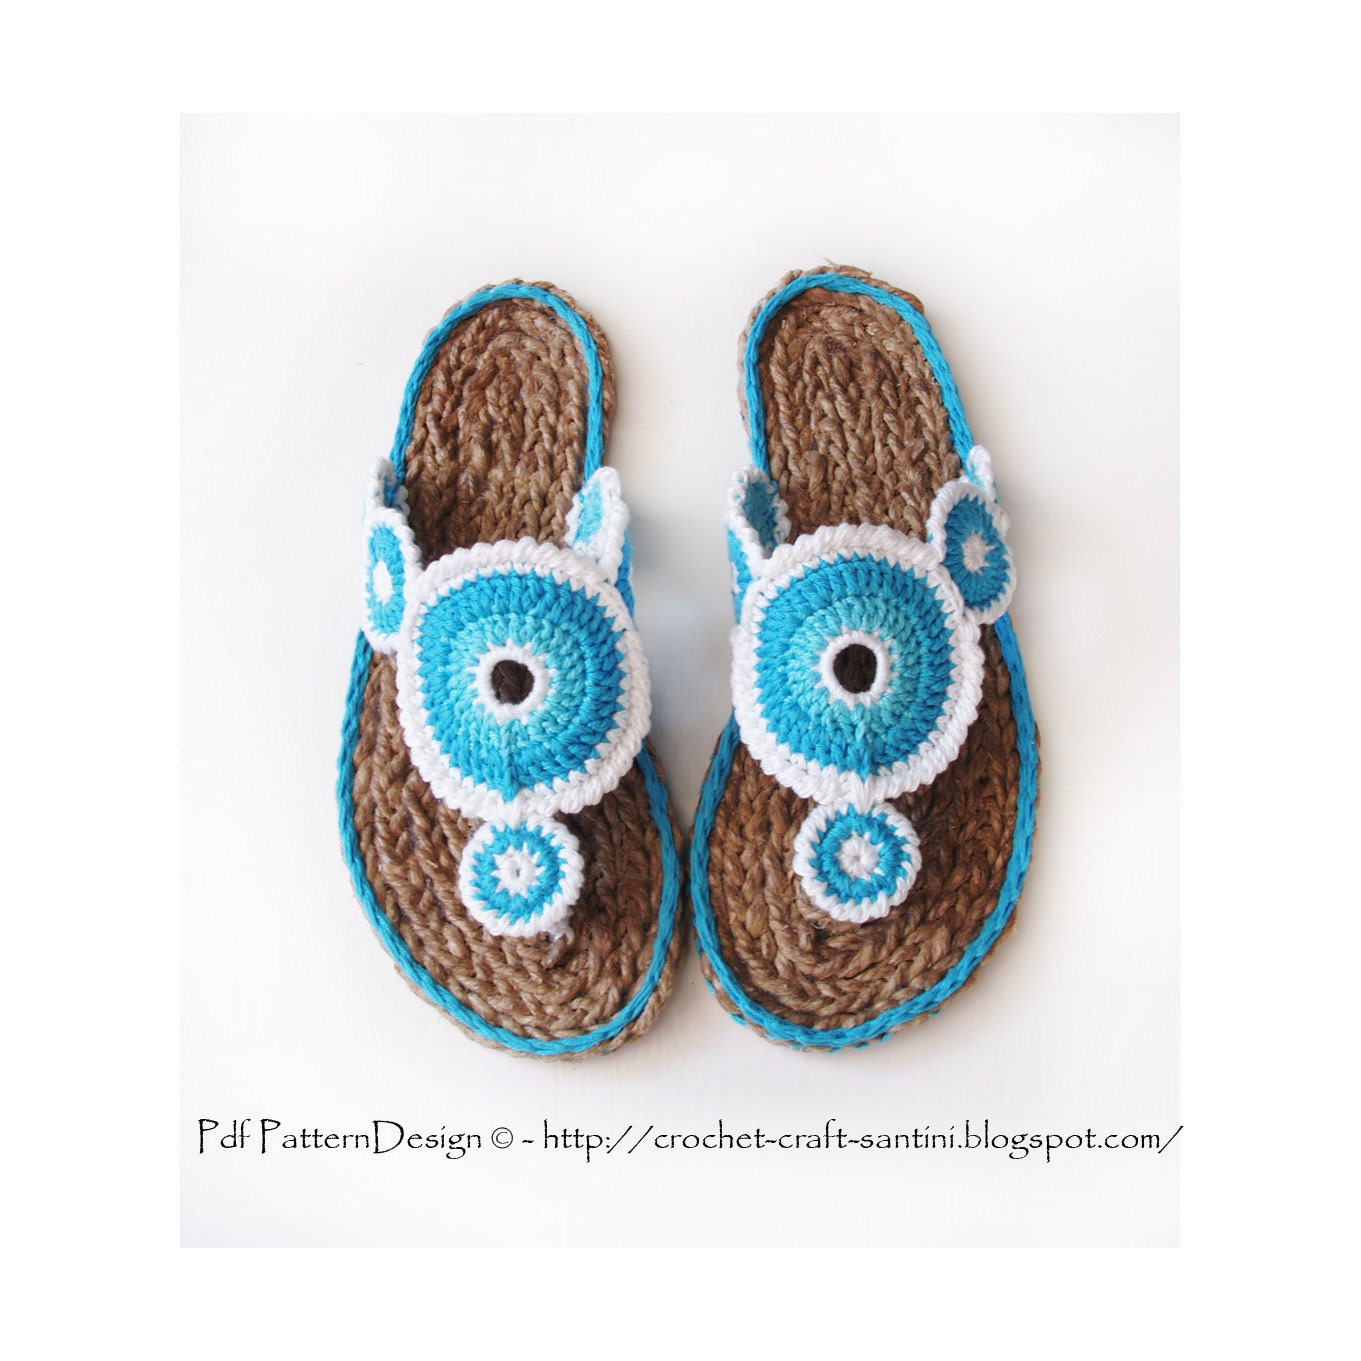 Crochet Yoyo Patterns : Yo-Yo Sandals E-Book Crochet Pattern and Cord Soles